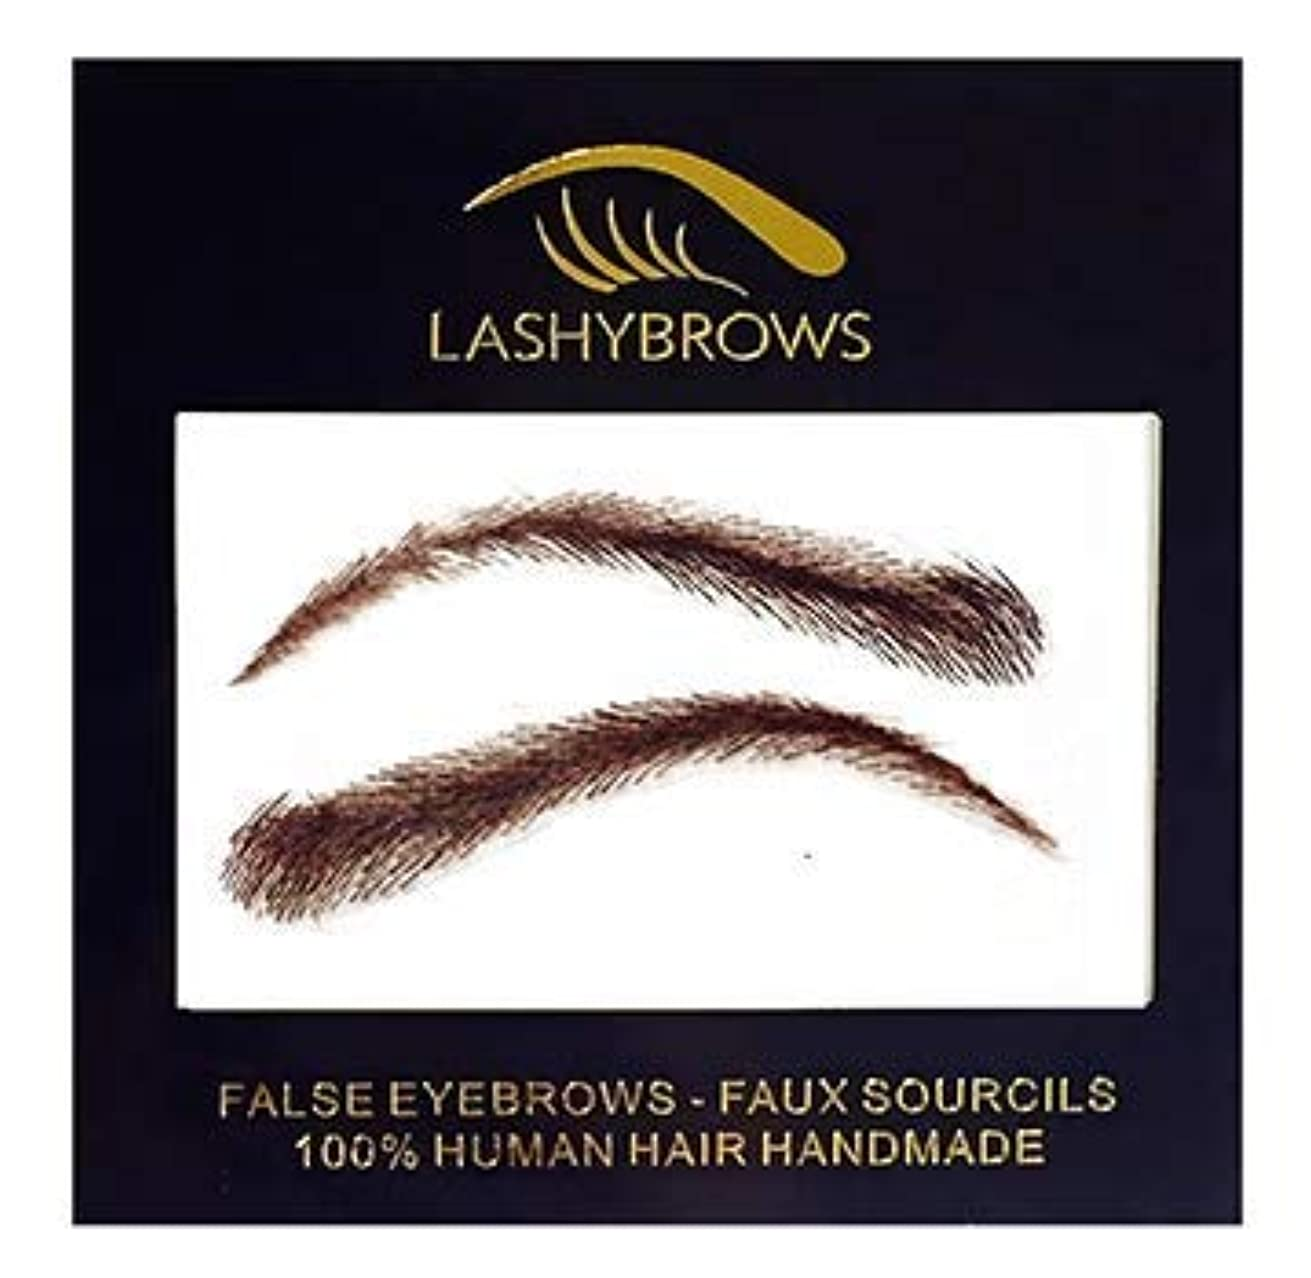 False Eyebrows, Lashybrows 100% Handmade Human Hair Re-Usable [Up to 3 Months] Silicone Base ANGELINA Fake Eyebrows